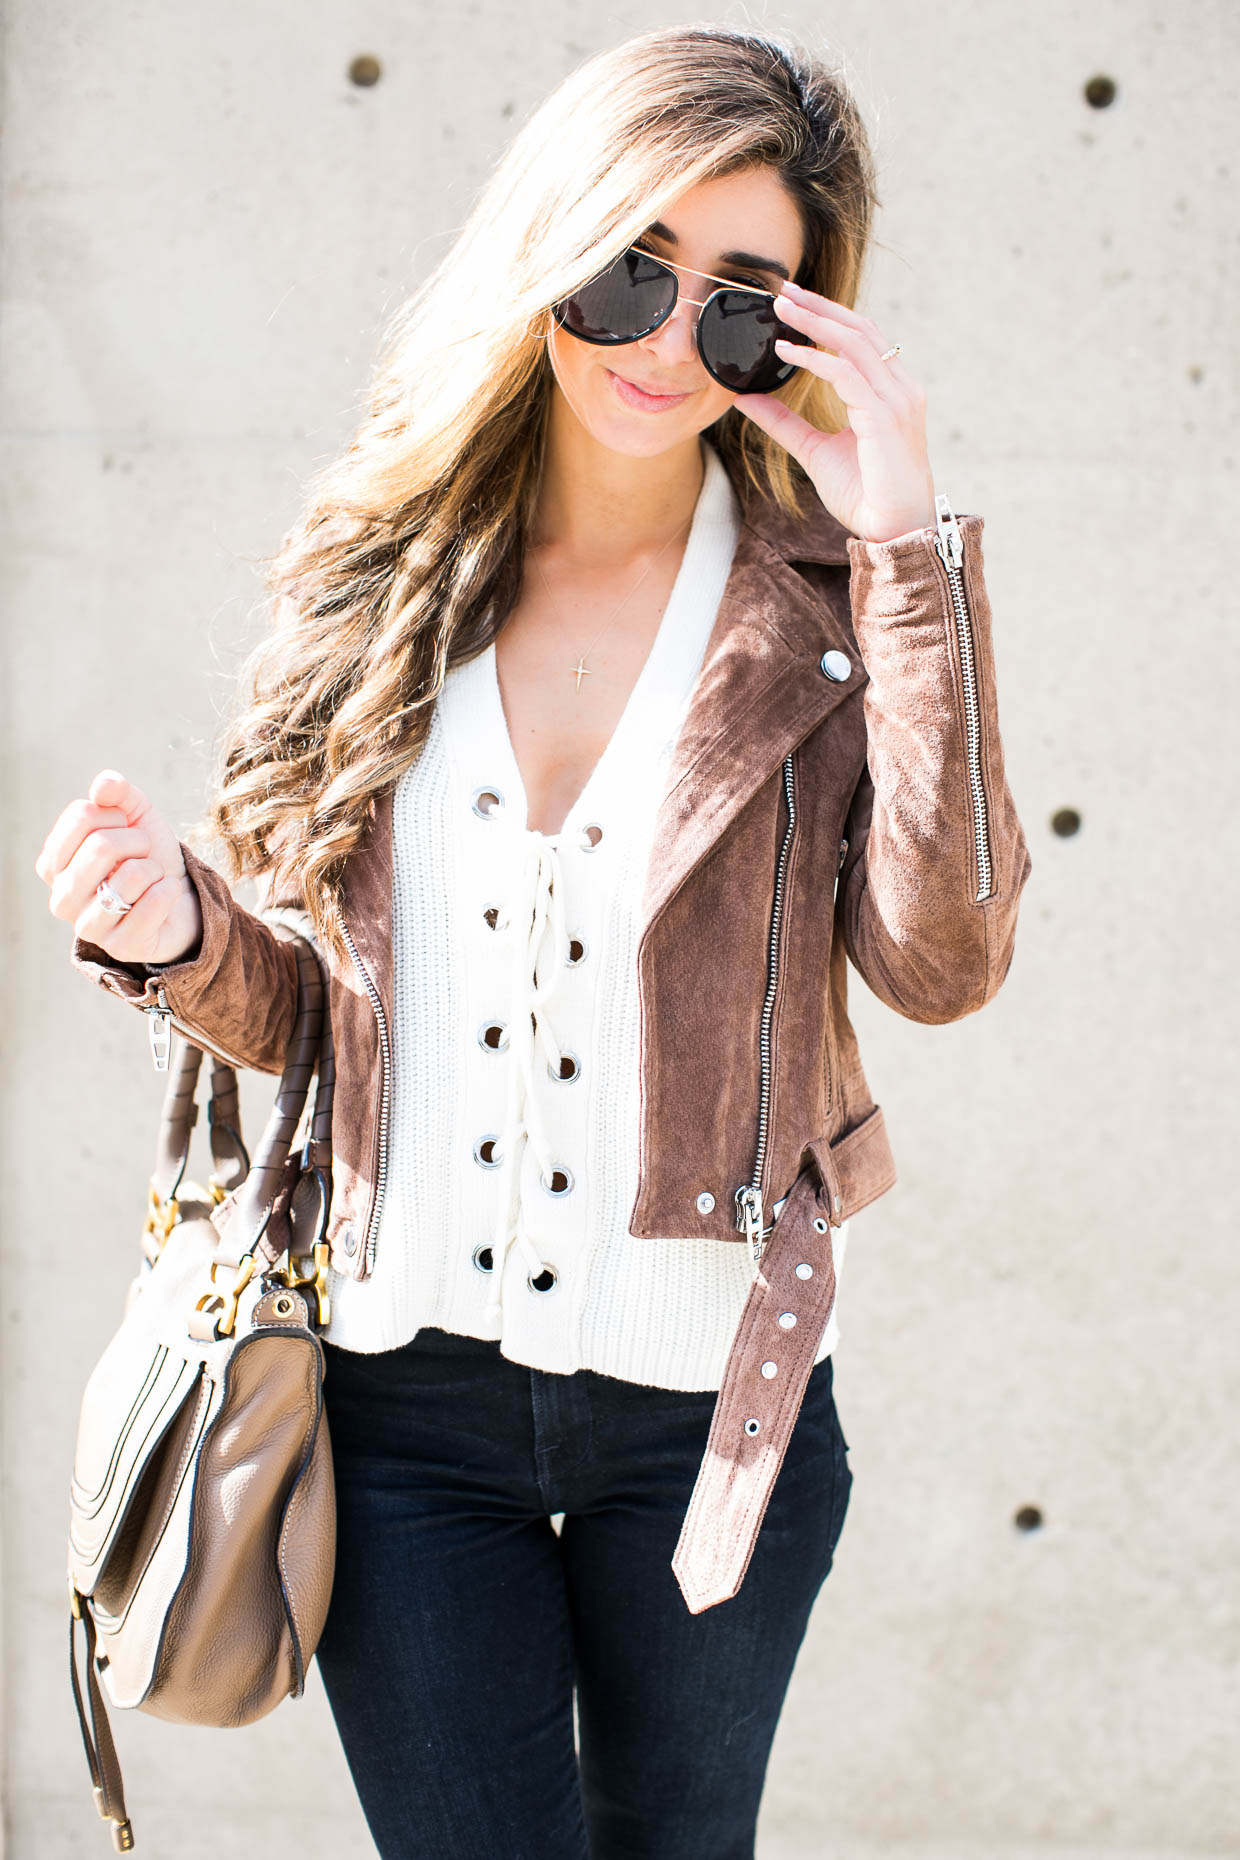 Fashion blogger The Darling Detail wears Lush Lace-Up Sweater, BLANKNYC Morning Suede Moto Jacket, FRAME 'Le High Skinny', High Rise Crop Jeans (Sterling), Quay Australia 'Needing Fame' 65mm Aviator Sunglasses, Larsson & Jennings 'Lugano' Mesh Strap Watch, Petite Albion Ring with Morganite and Diamonds, and Chloé 'Medium Marcie' Leather Satchel